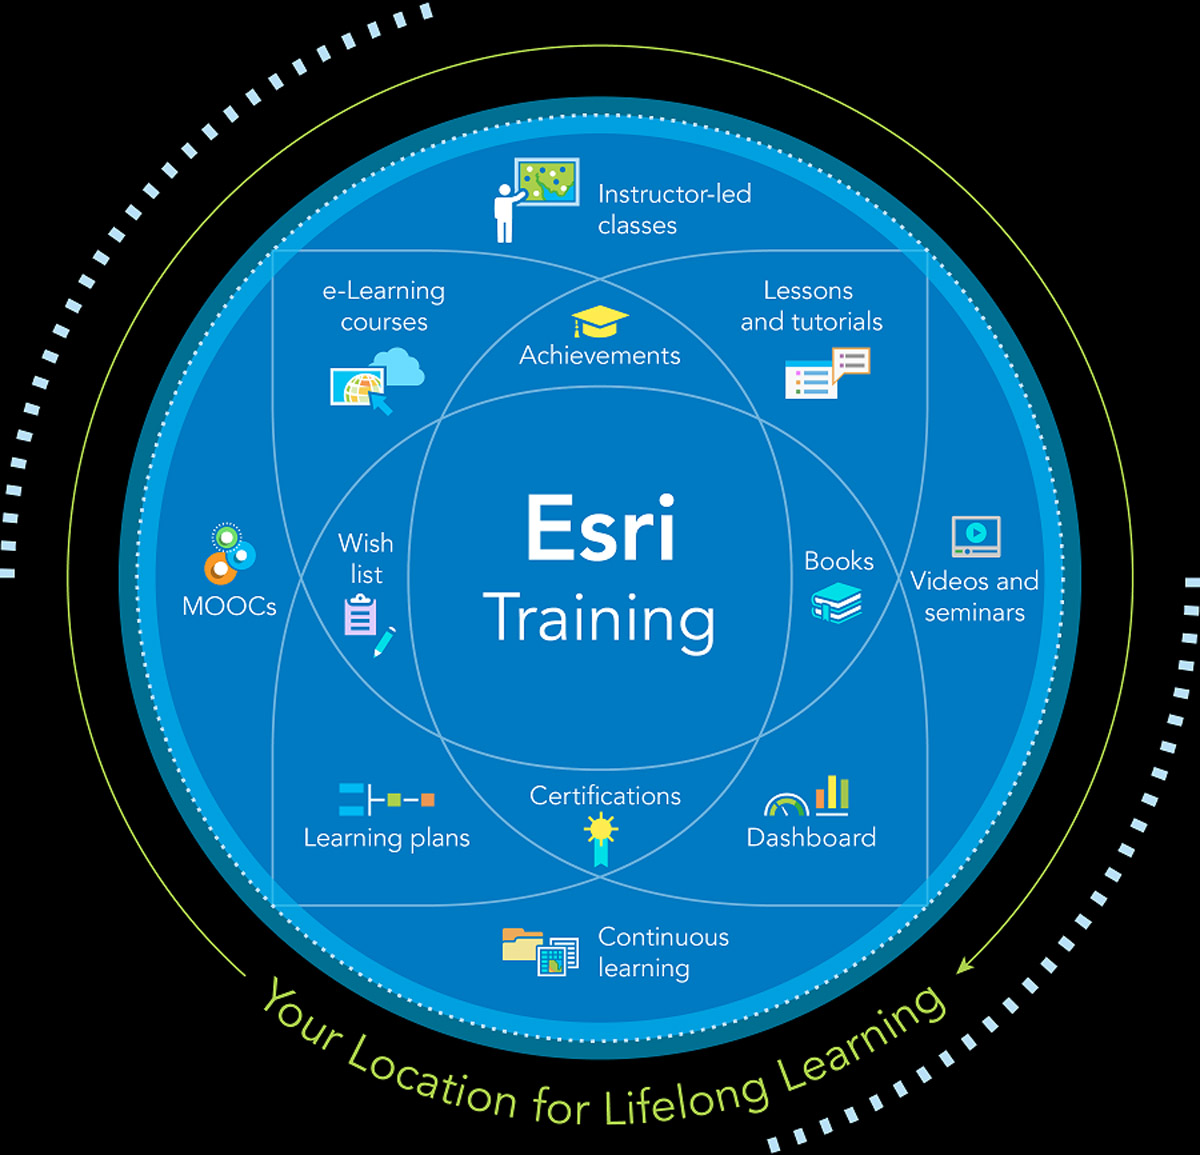 Esri Offers Free Self-Paced E-Learning to Customers through